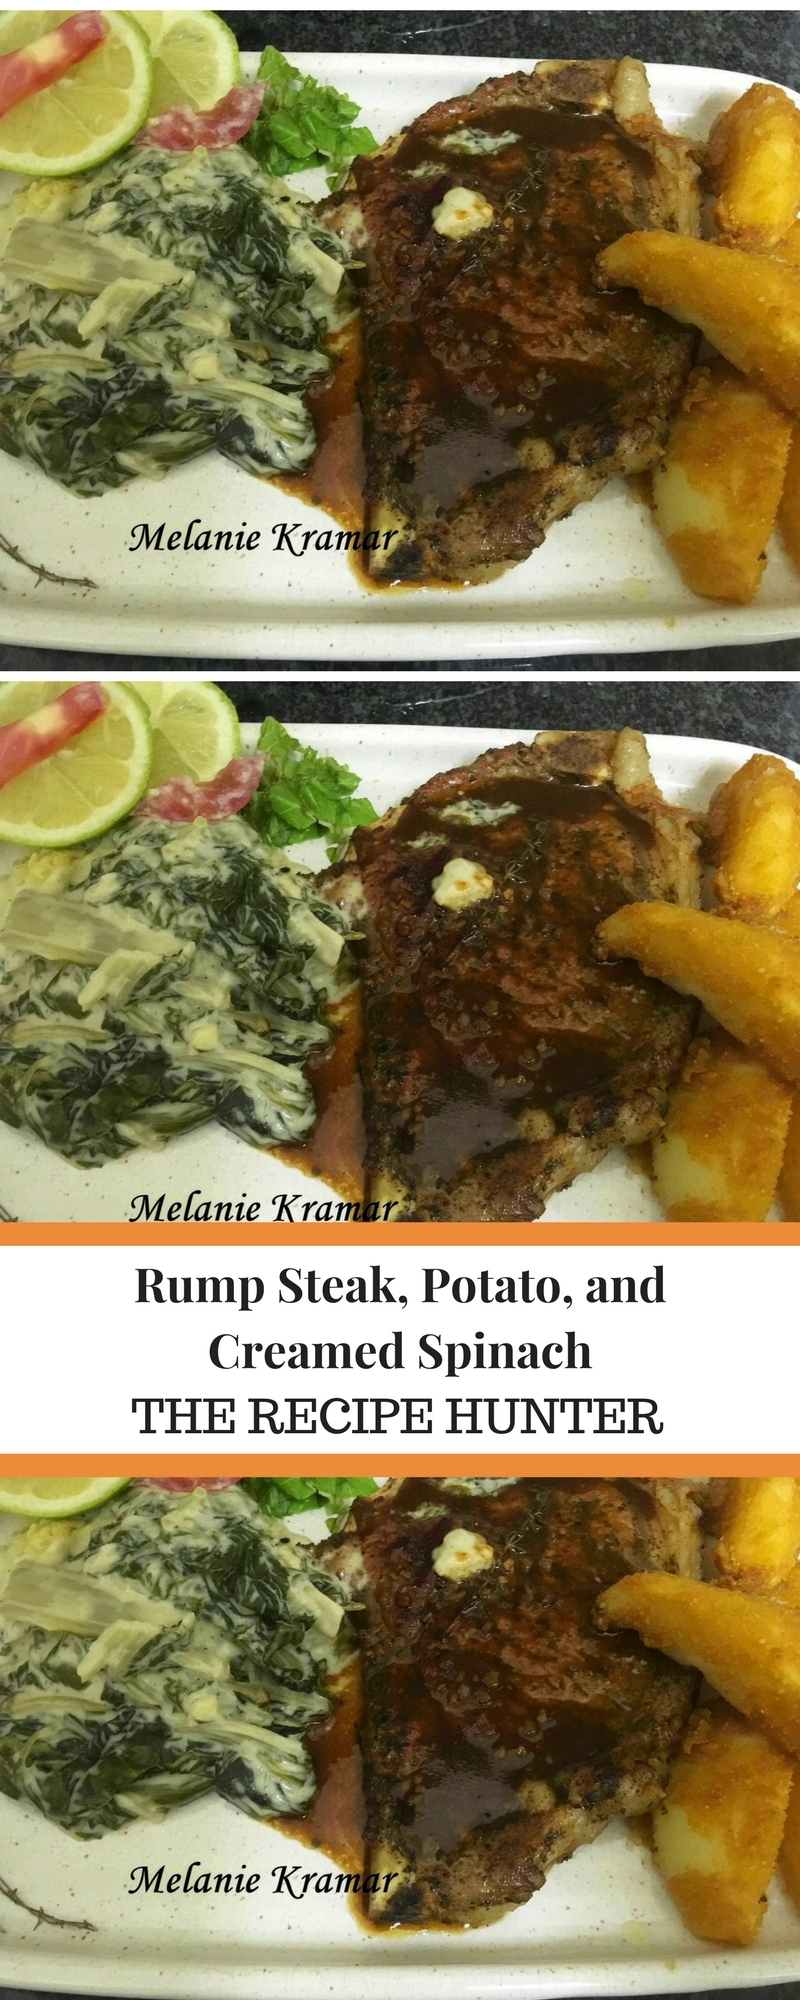 Rump Steak, Potato, and Creamed Spinach